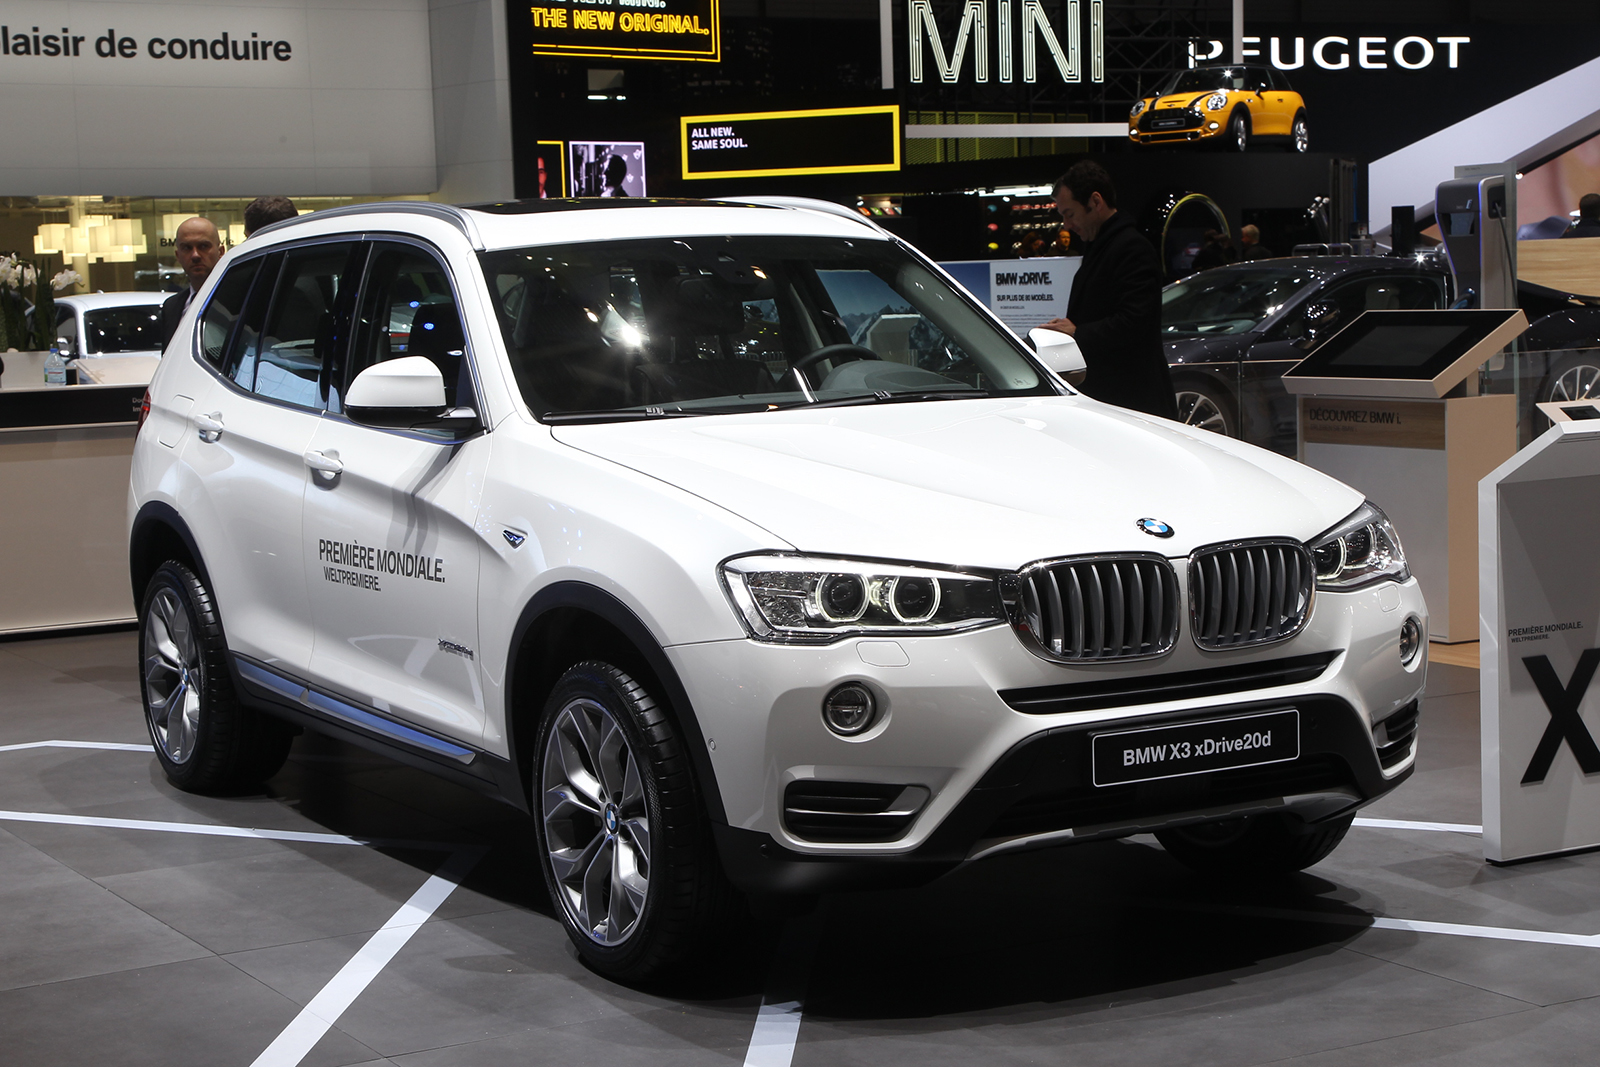 geneva 2014 bmw x3 facelift unveiled autocar india. Black Bedroom Furniture Sets. Home Design Ideas